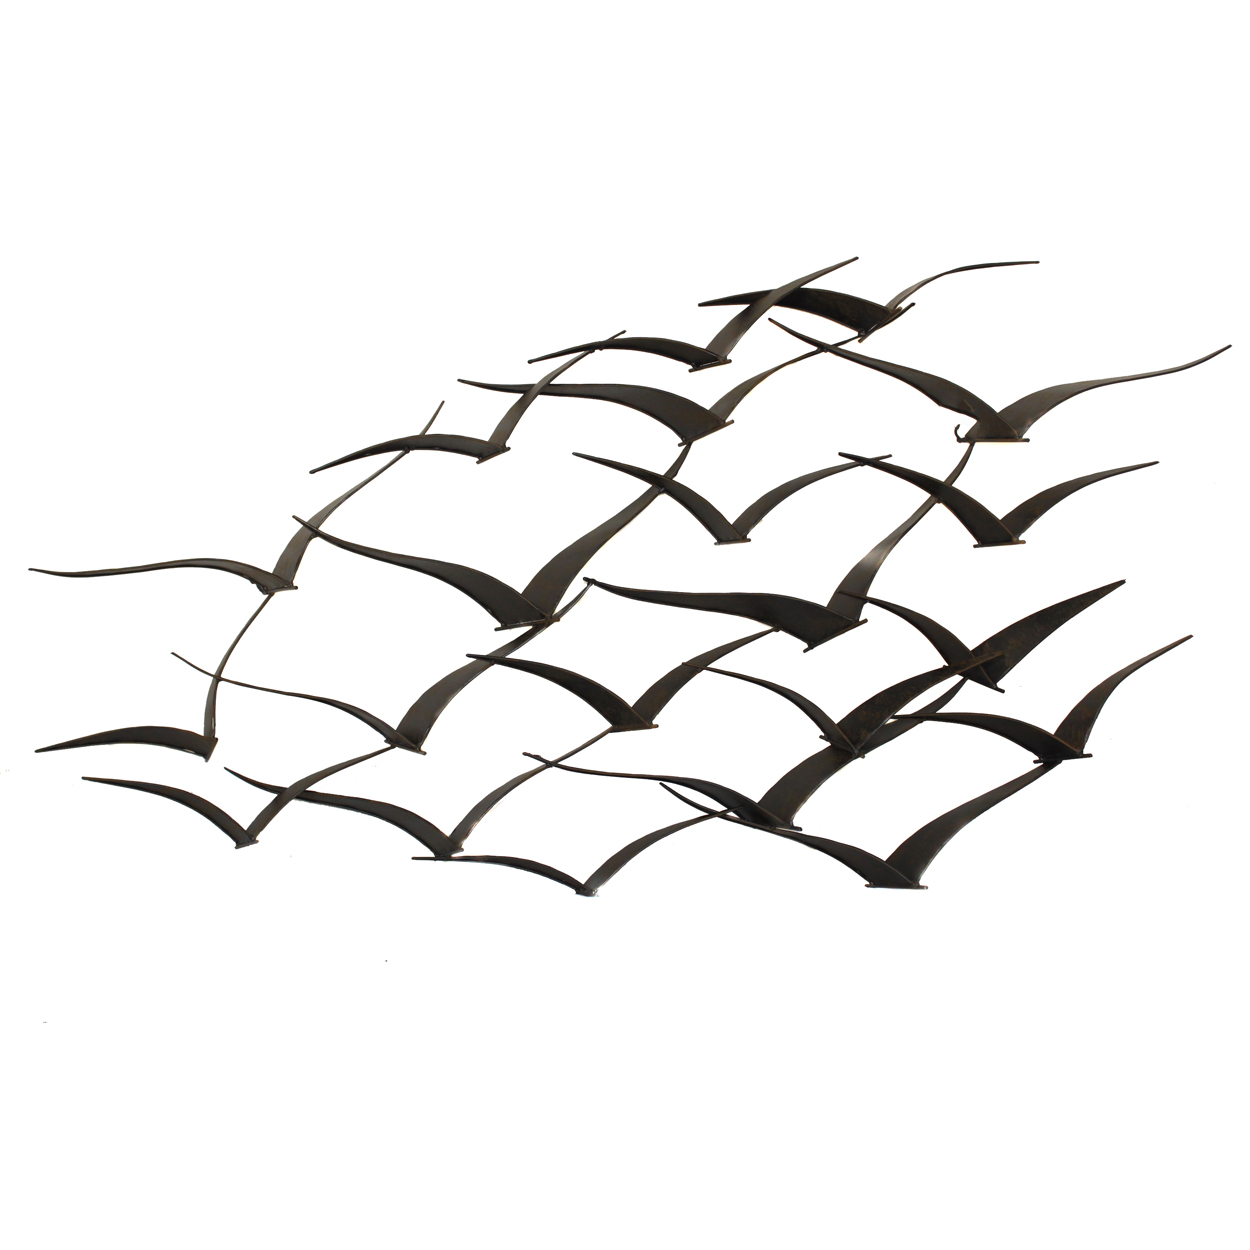 Metal Bird Wall Decor Target : Urban designs handcrafted flock of birds metal wall art